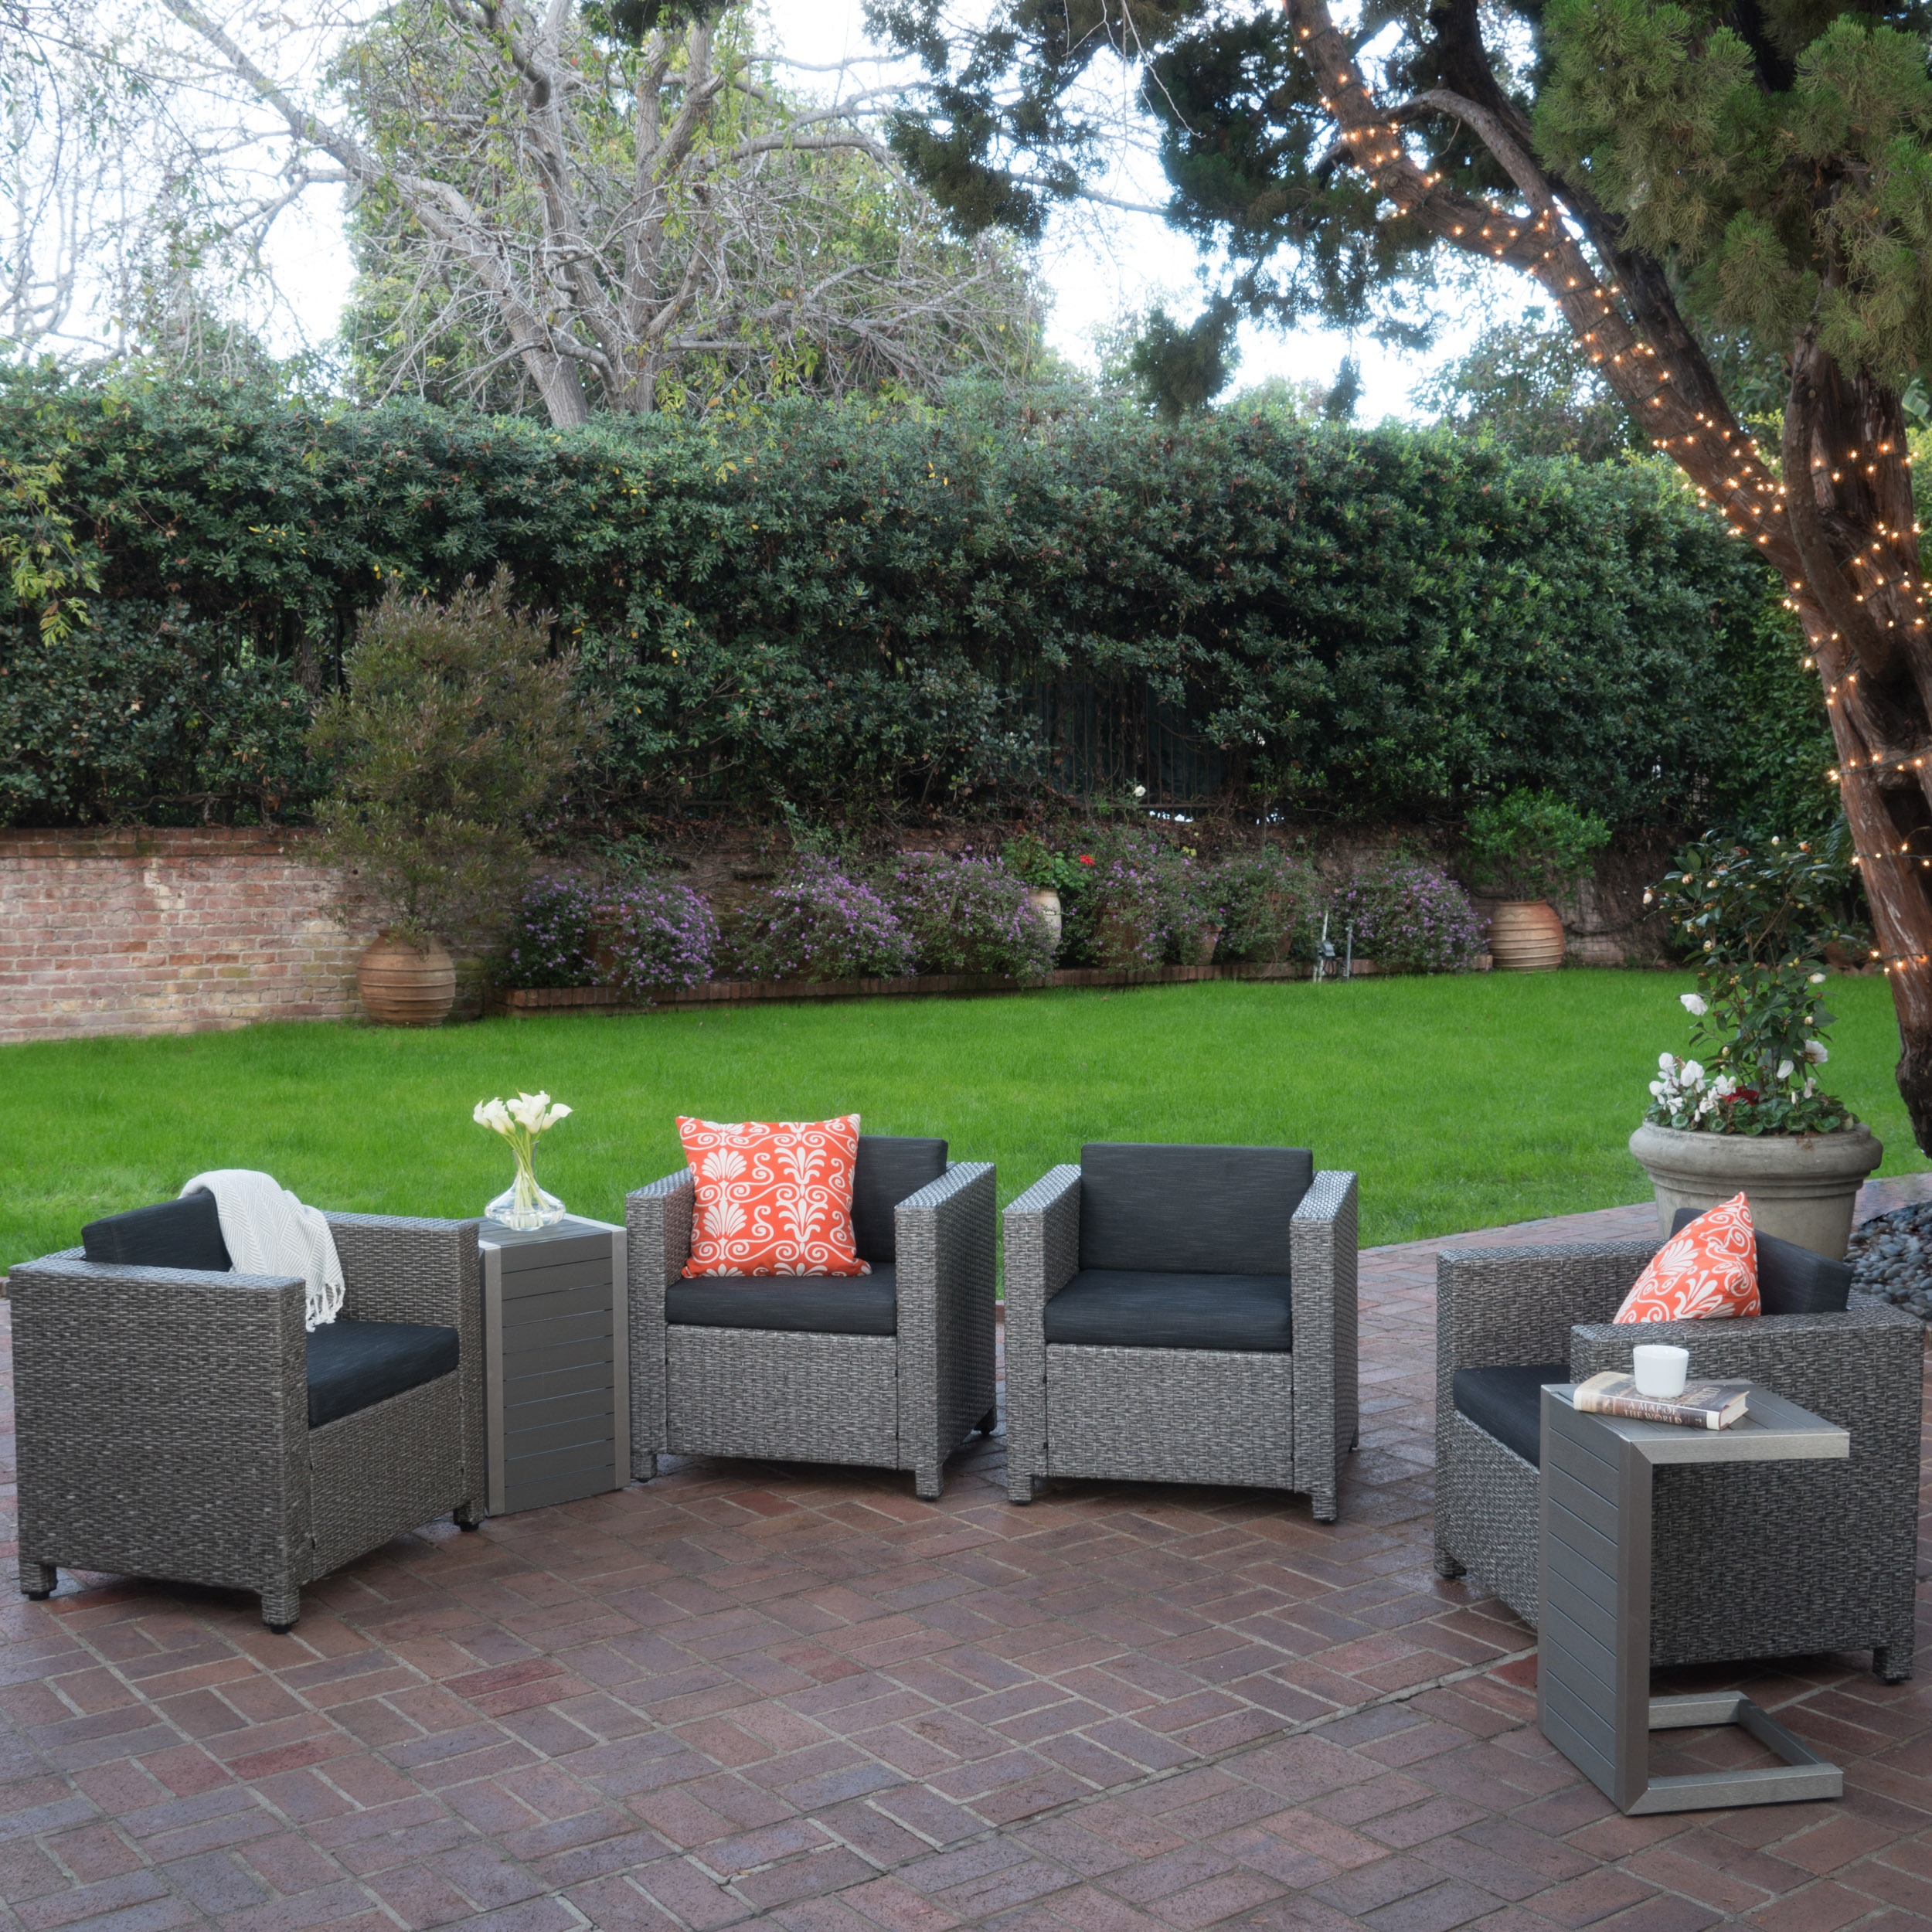 Cascada Outdoor 4 Piece Wicker Club Chairs with Cushions and 2 Natural Finish Polymer Blended Wood C-Shaped Tables, Dark Grey, Mixed Black